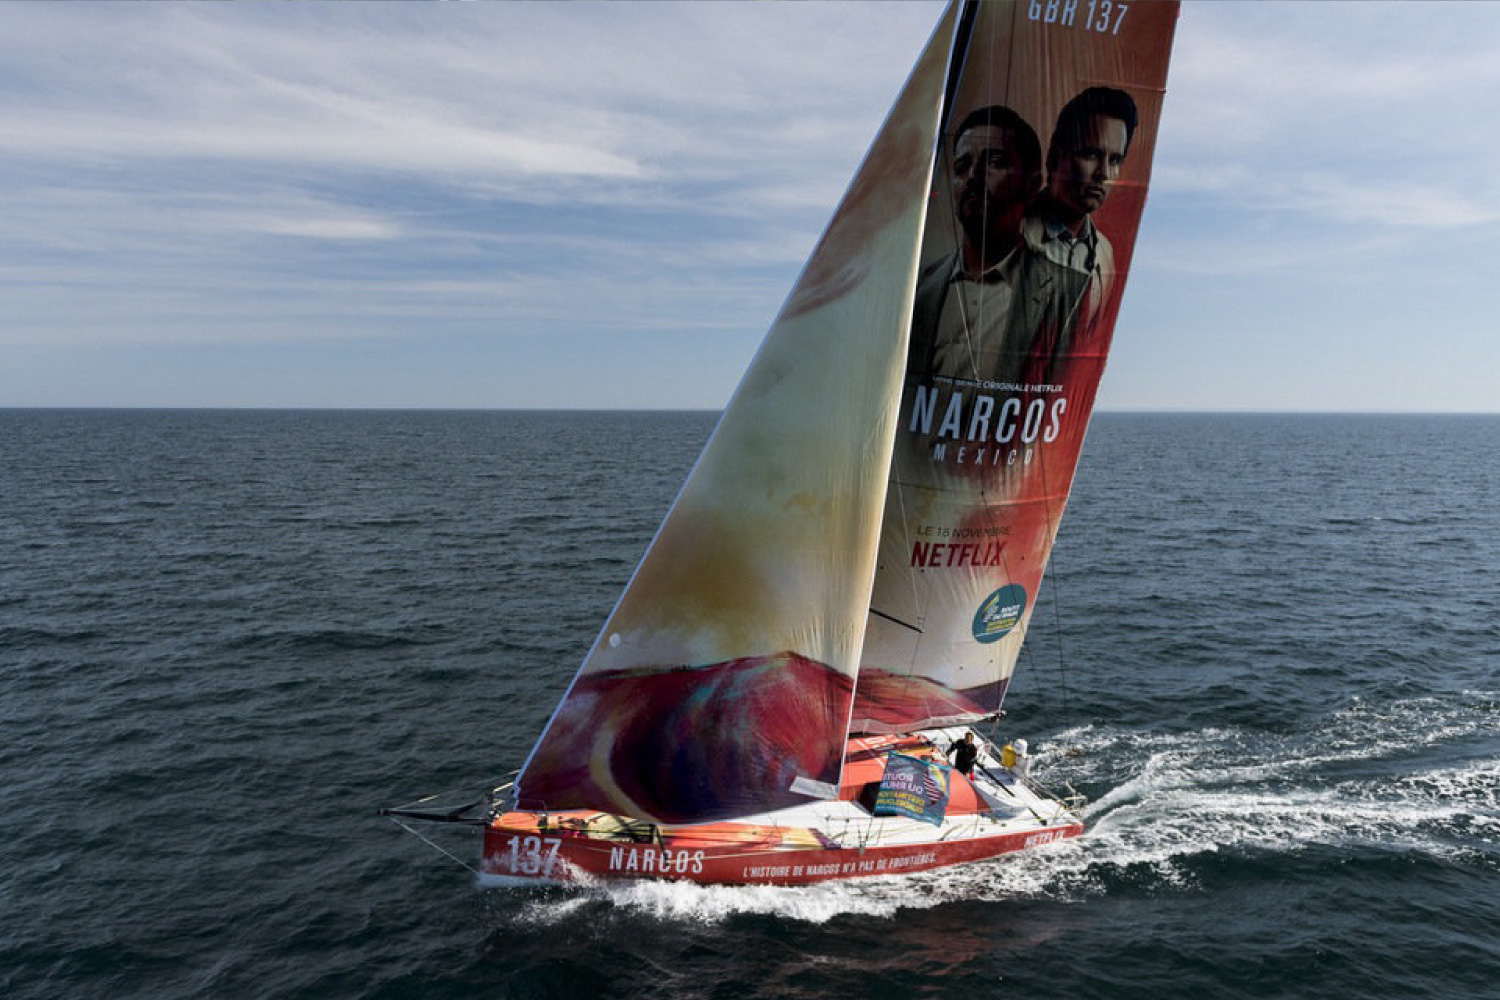 Class 40 Netflix Narcos Sailing With Digitally Printed Yacht Hull Wrap And Digitally Printed Vinyl Wrap Sails